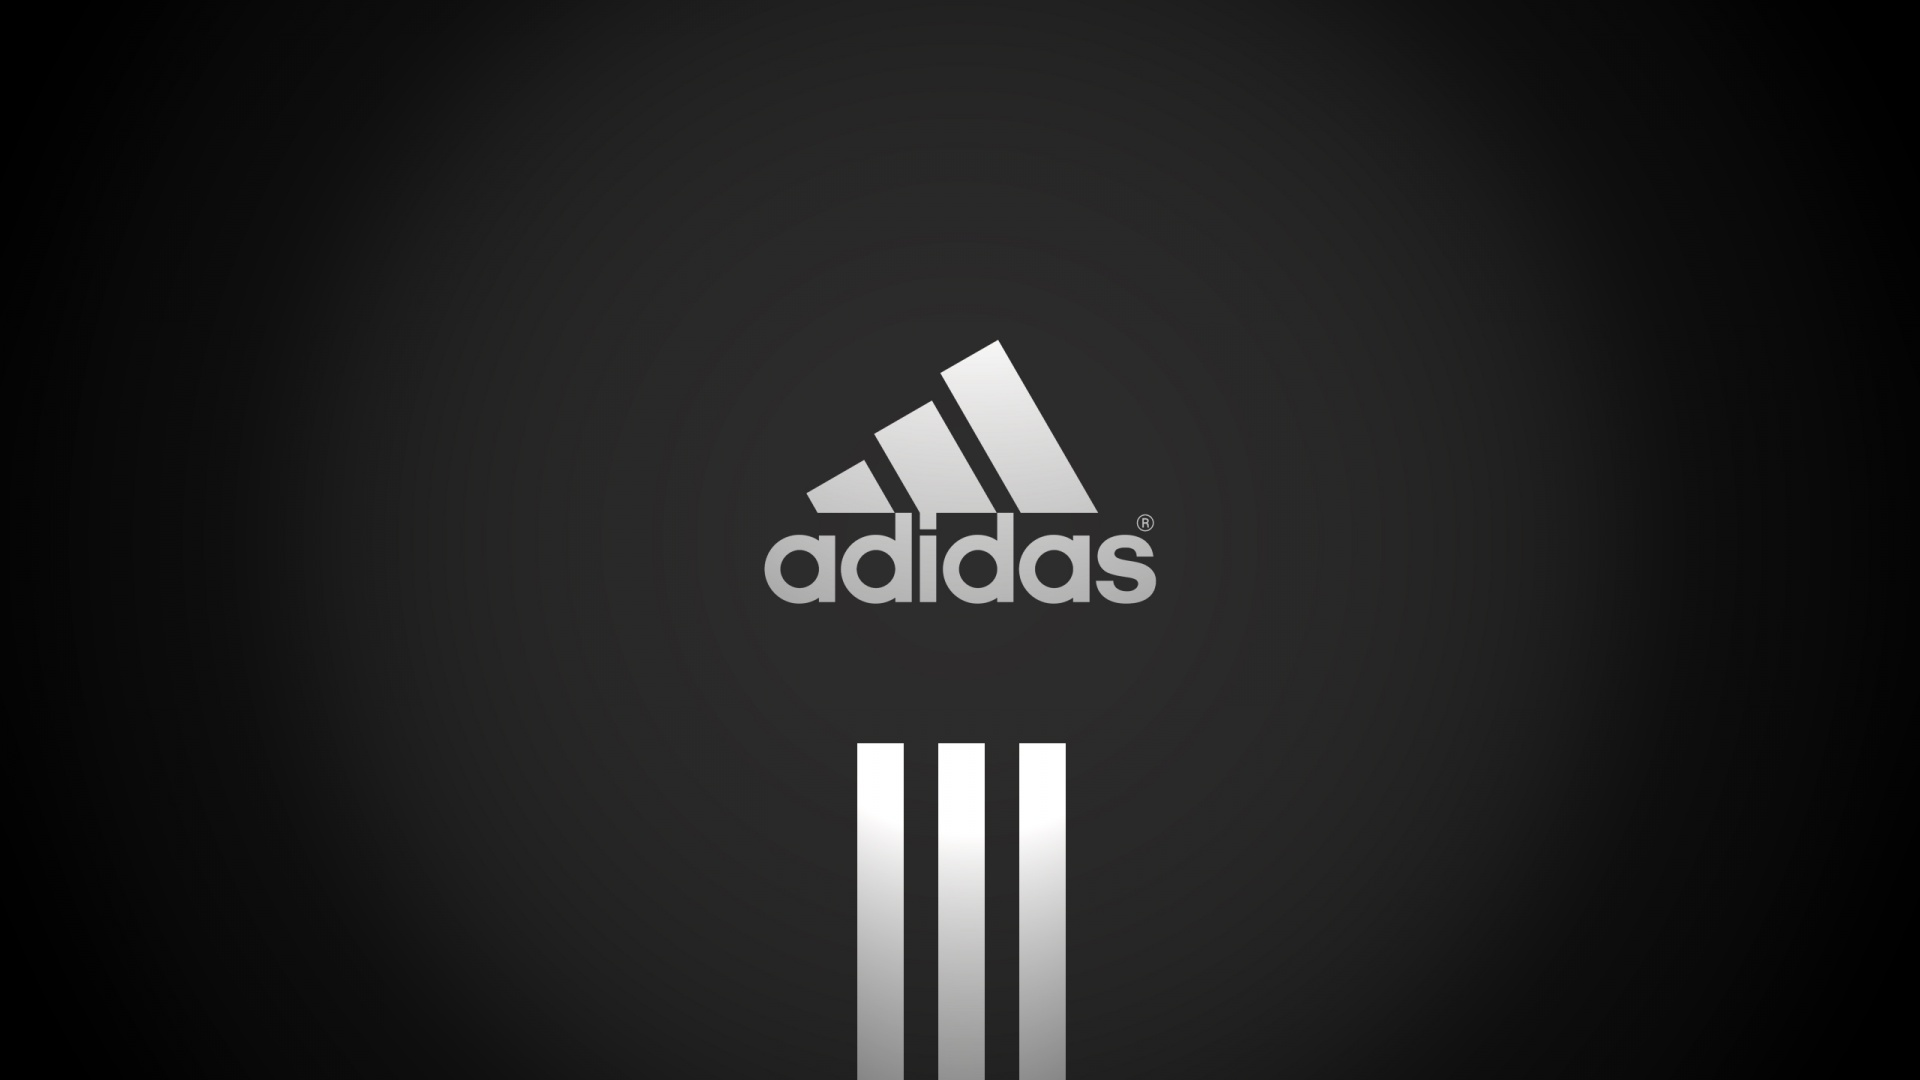 1920x1080 Adidas Logo desktop PC and Mac wallpaper 1920x1080